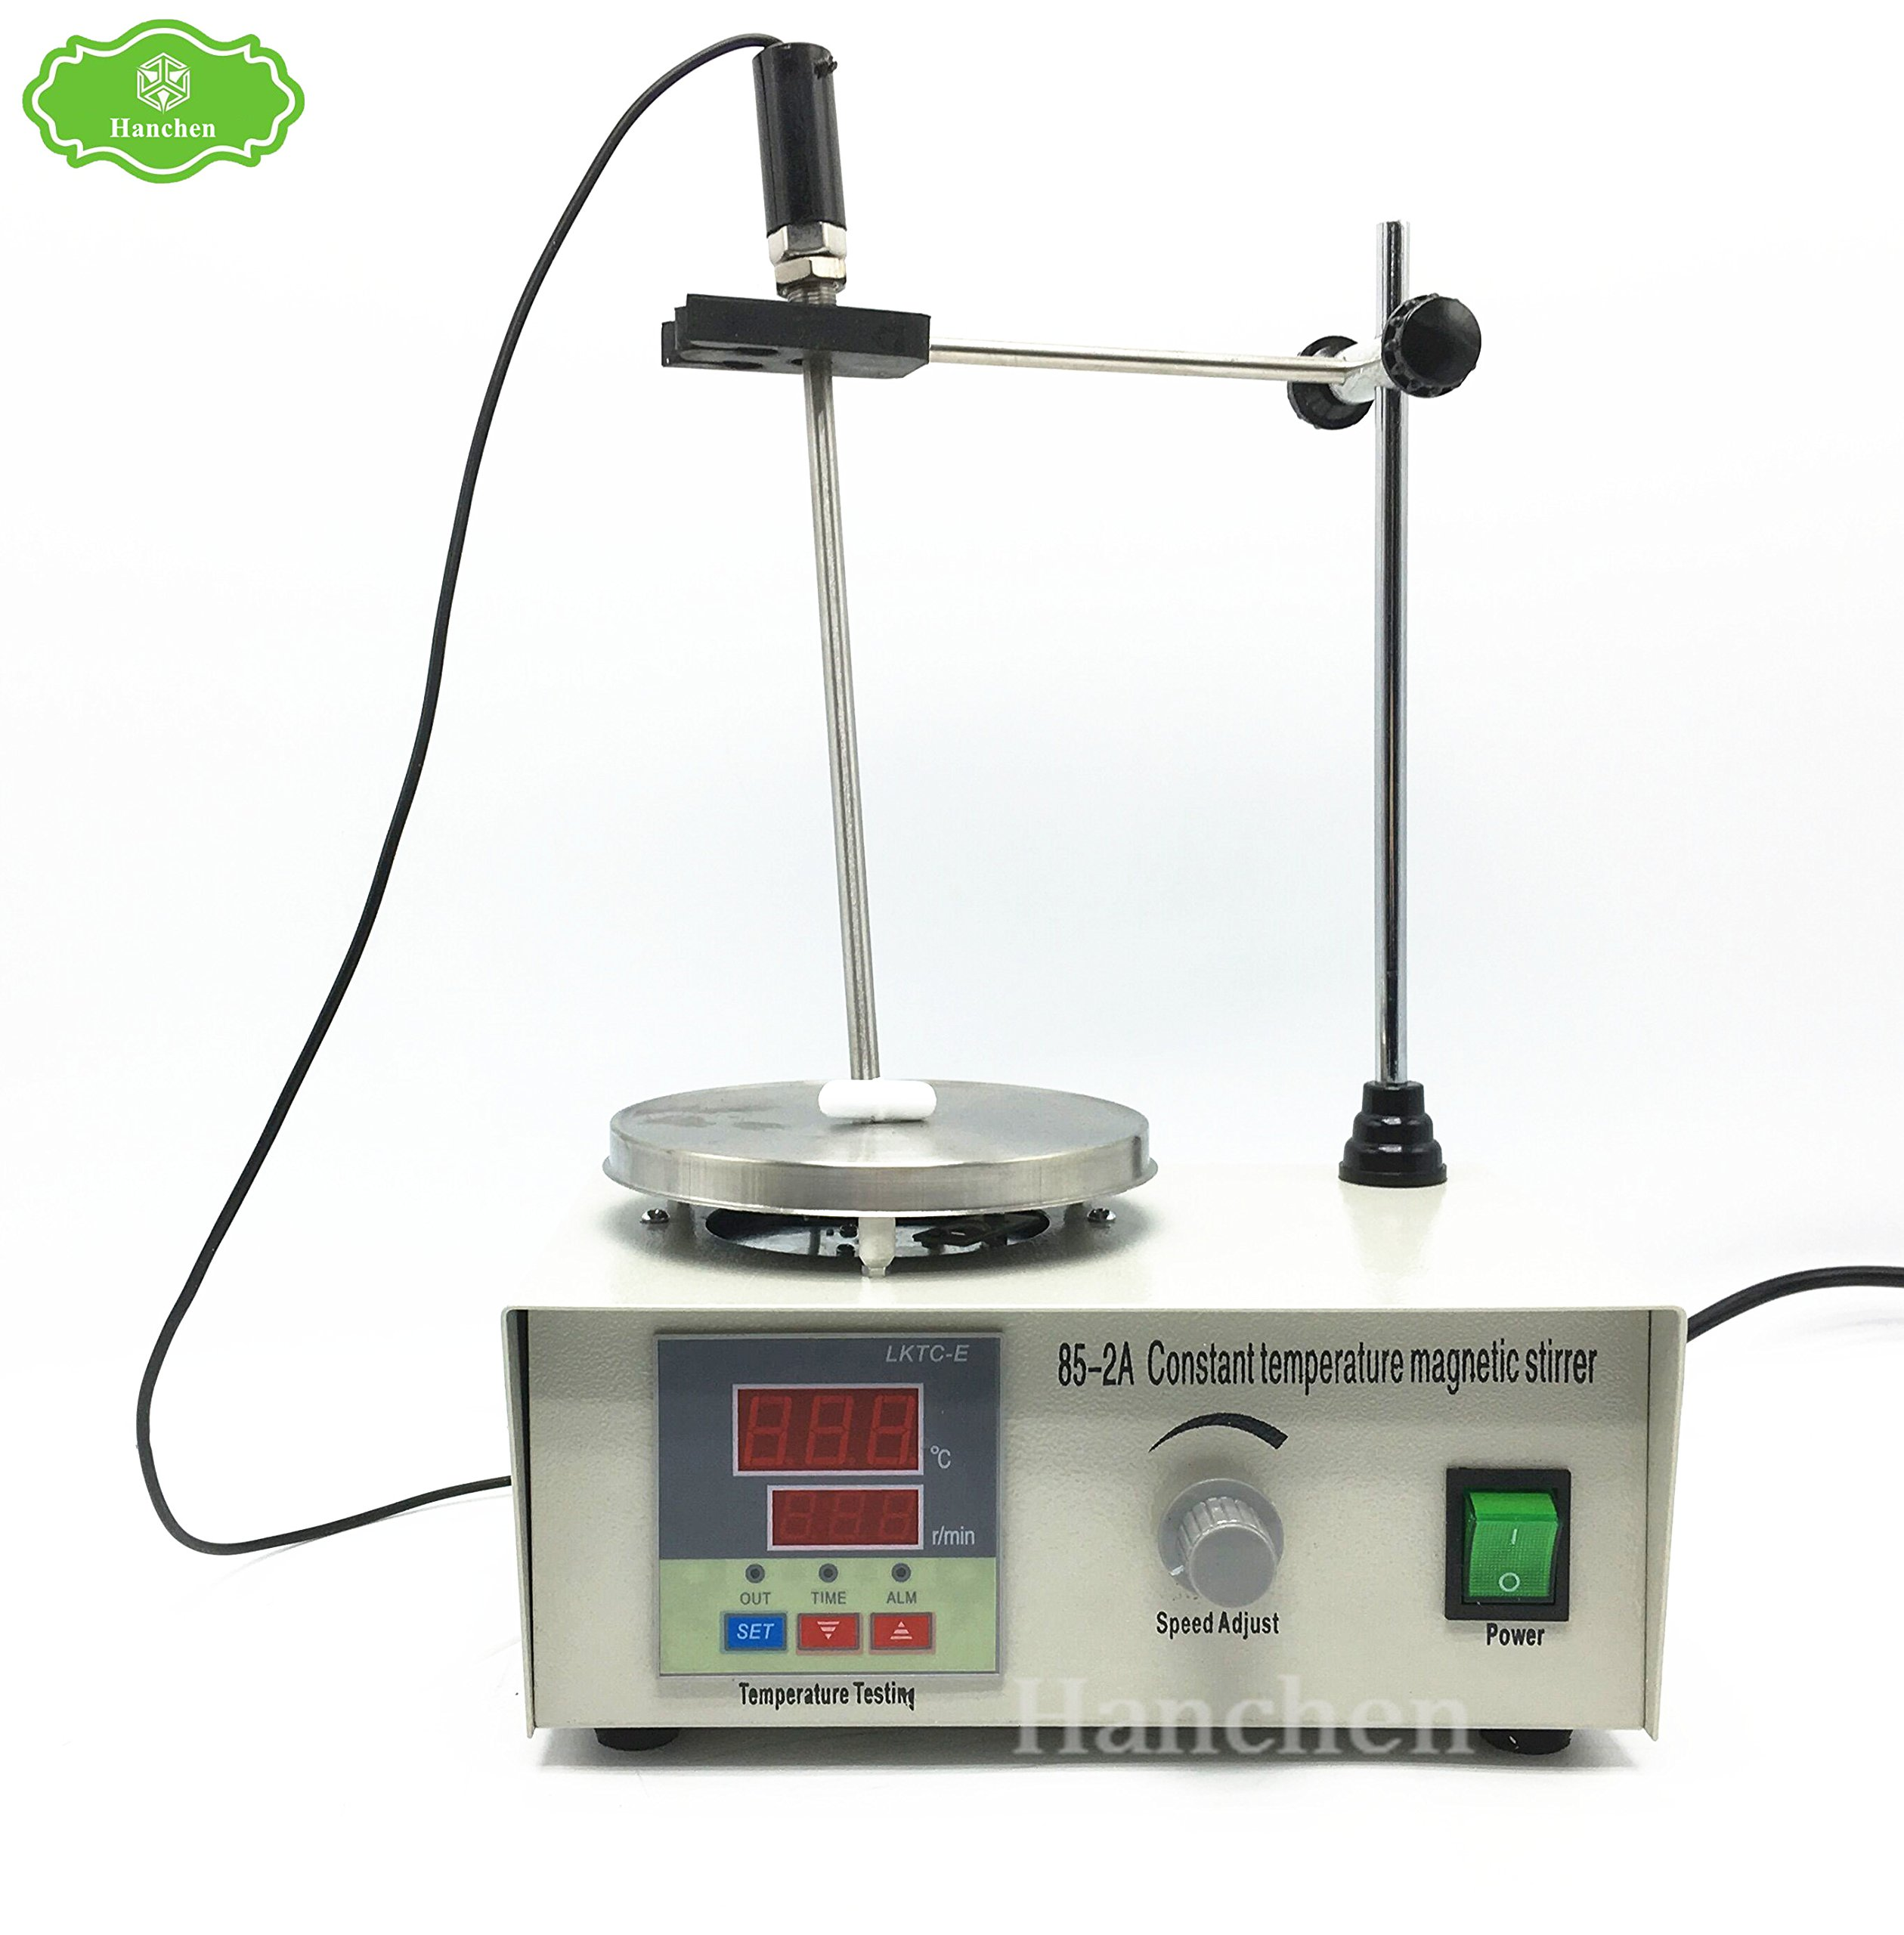 85-2A Magnetic Stirrer Digital Thermostatic Hotplate Mixer 0-2600rpm (85-2A)